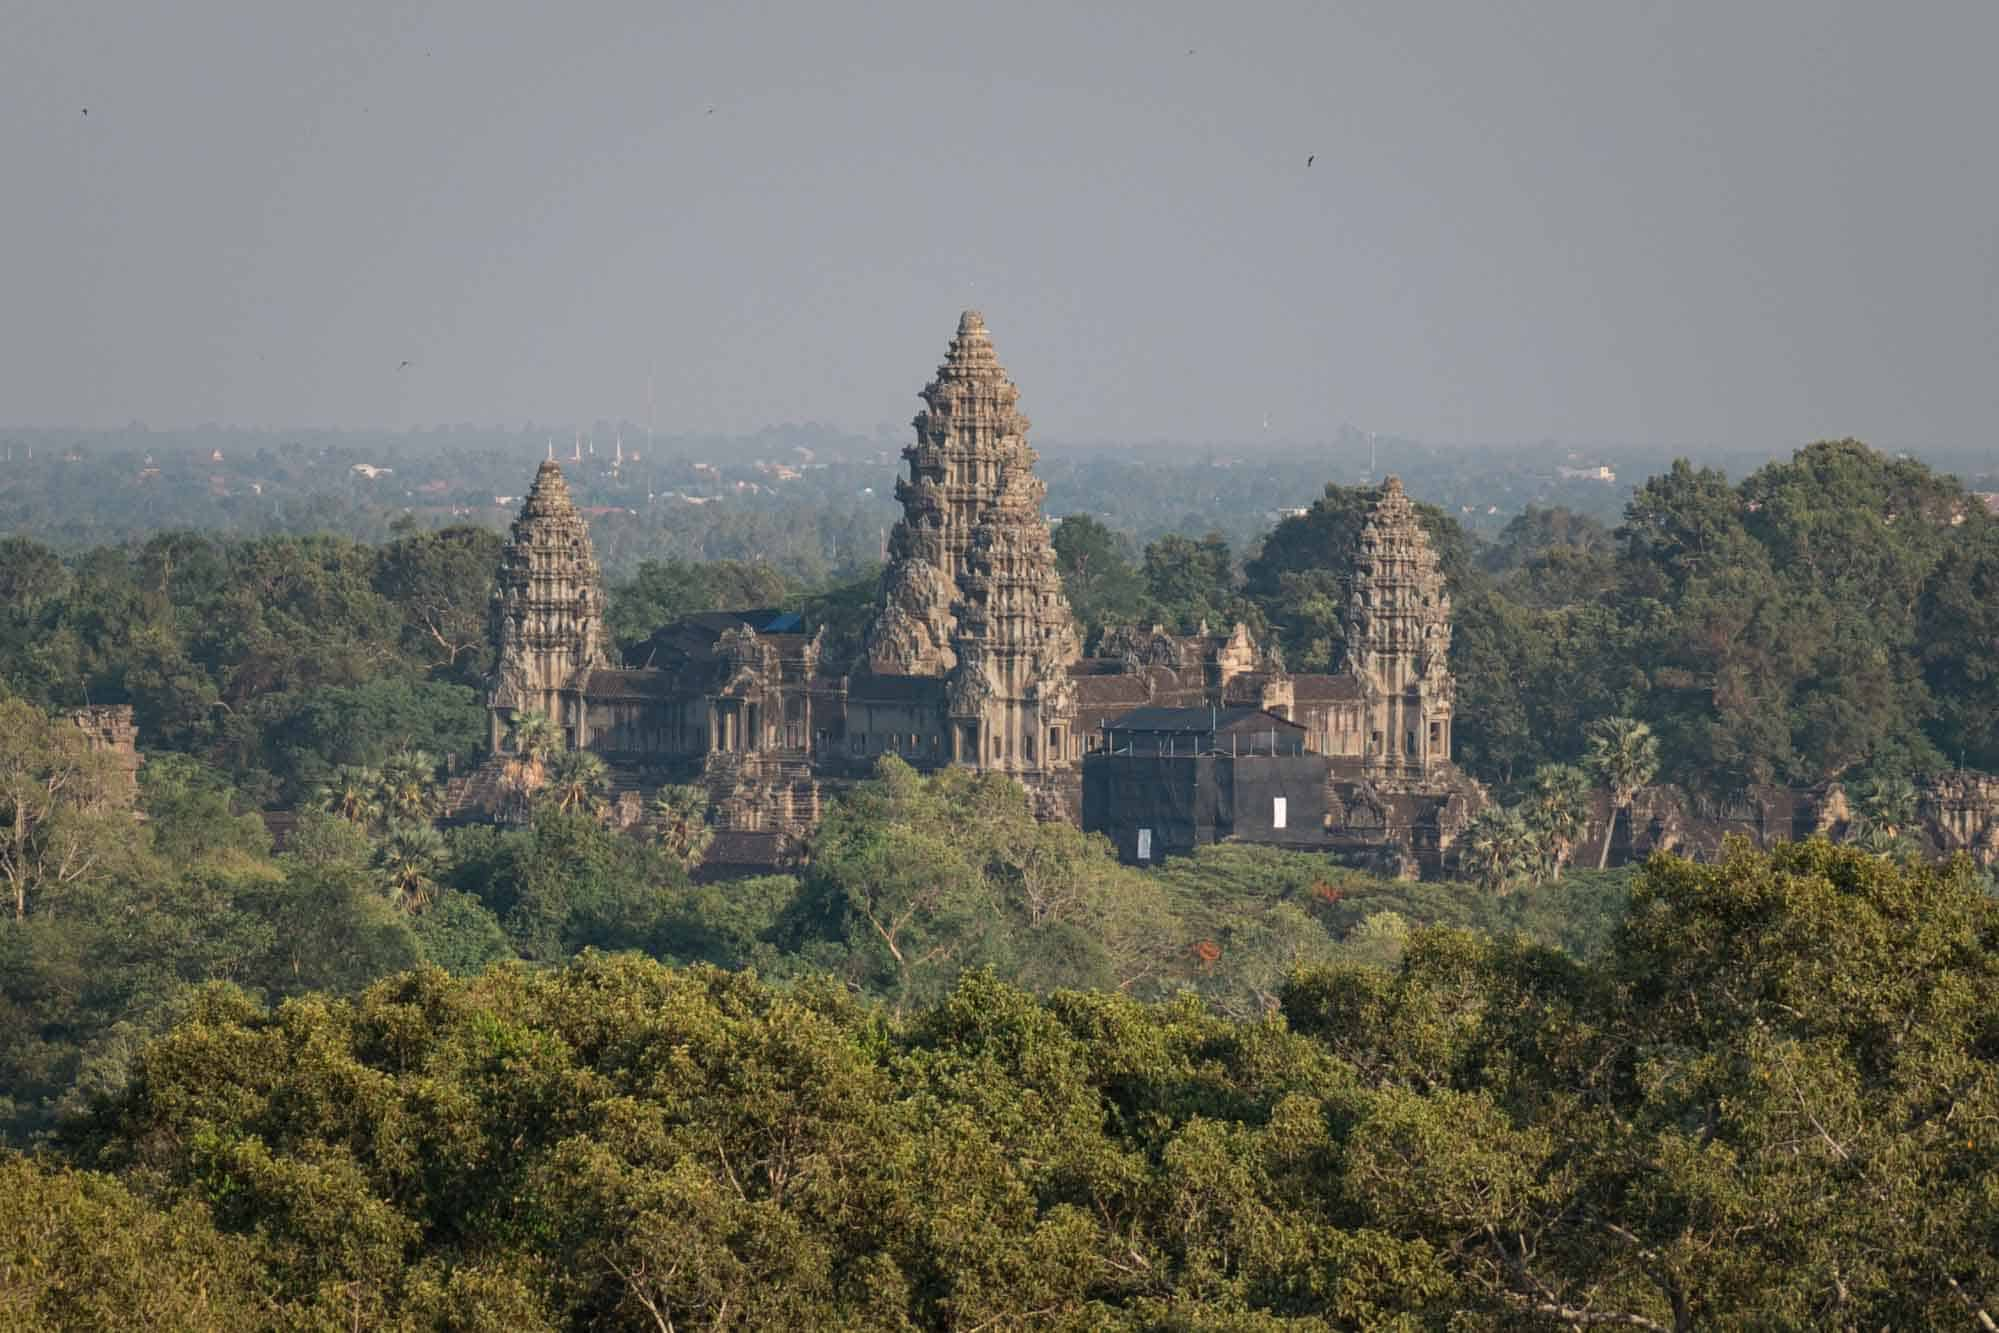 View of Angkor Wat from Phnom Bakeng